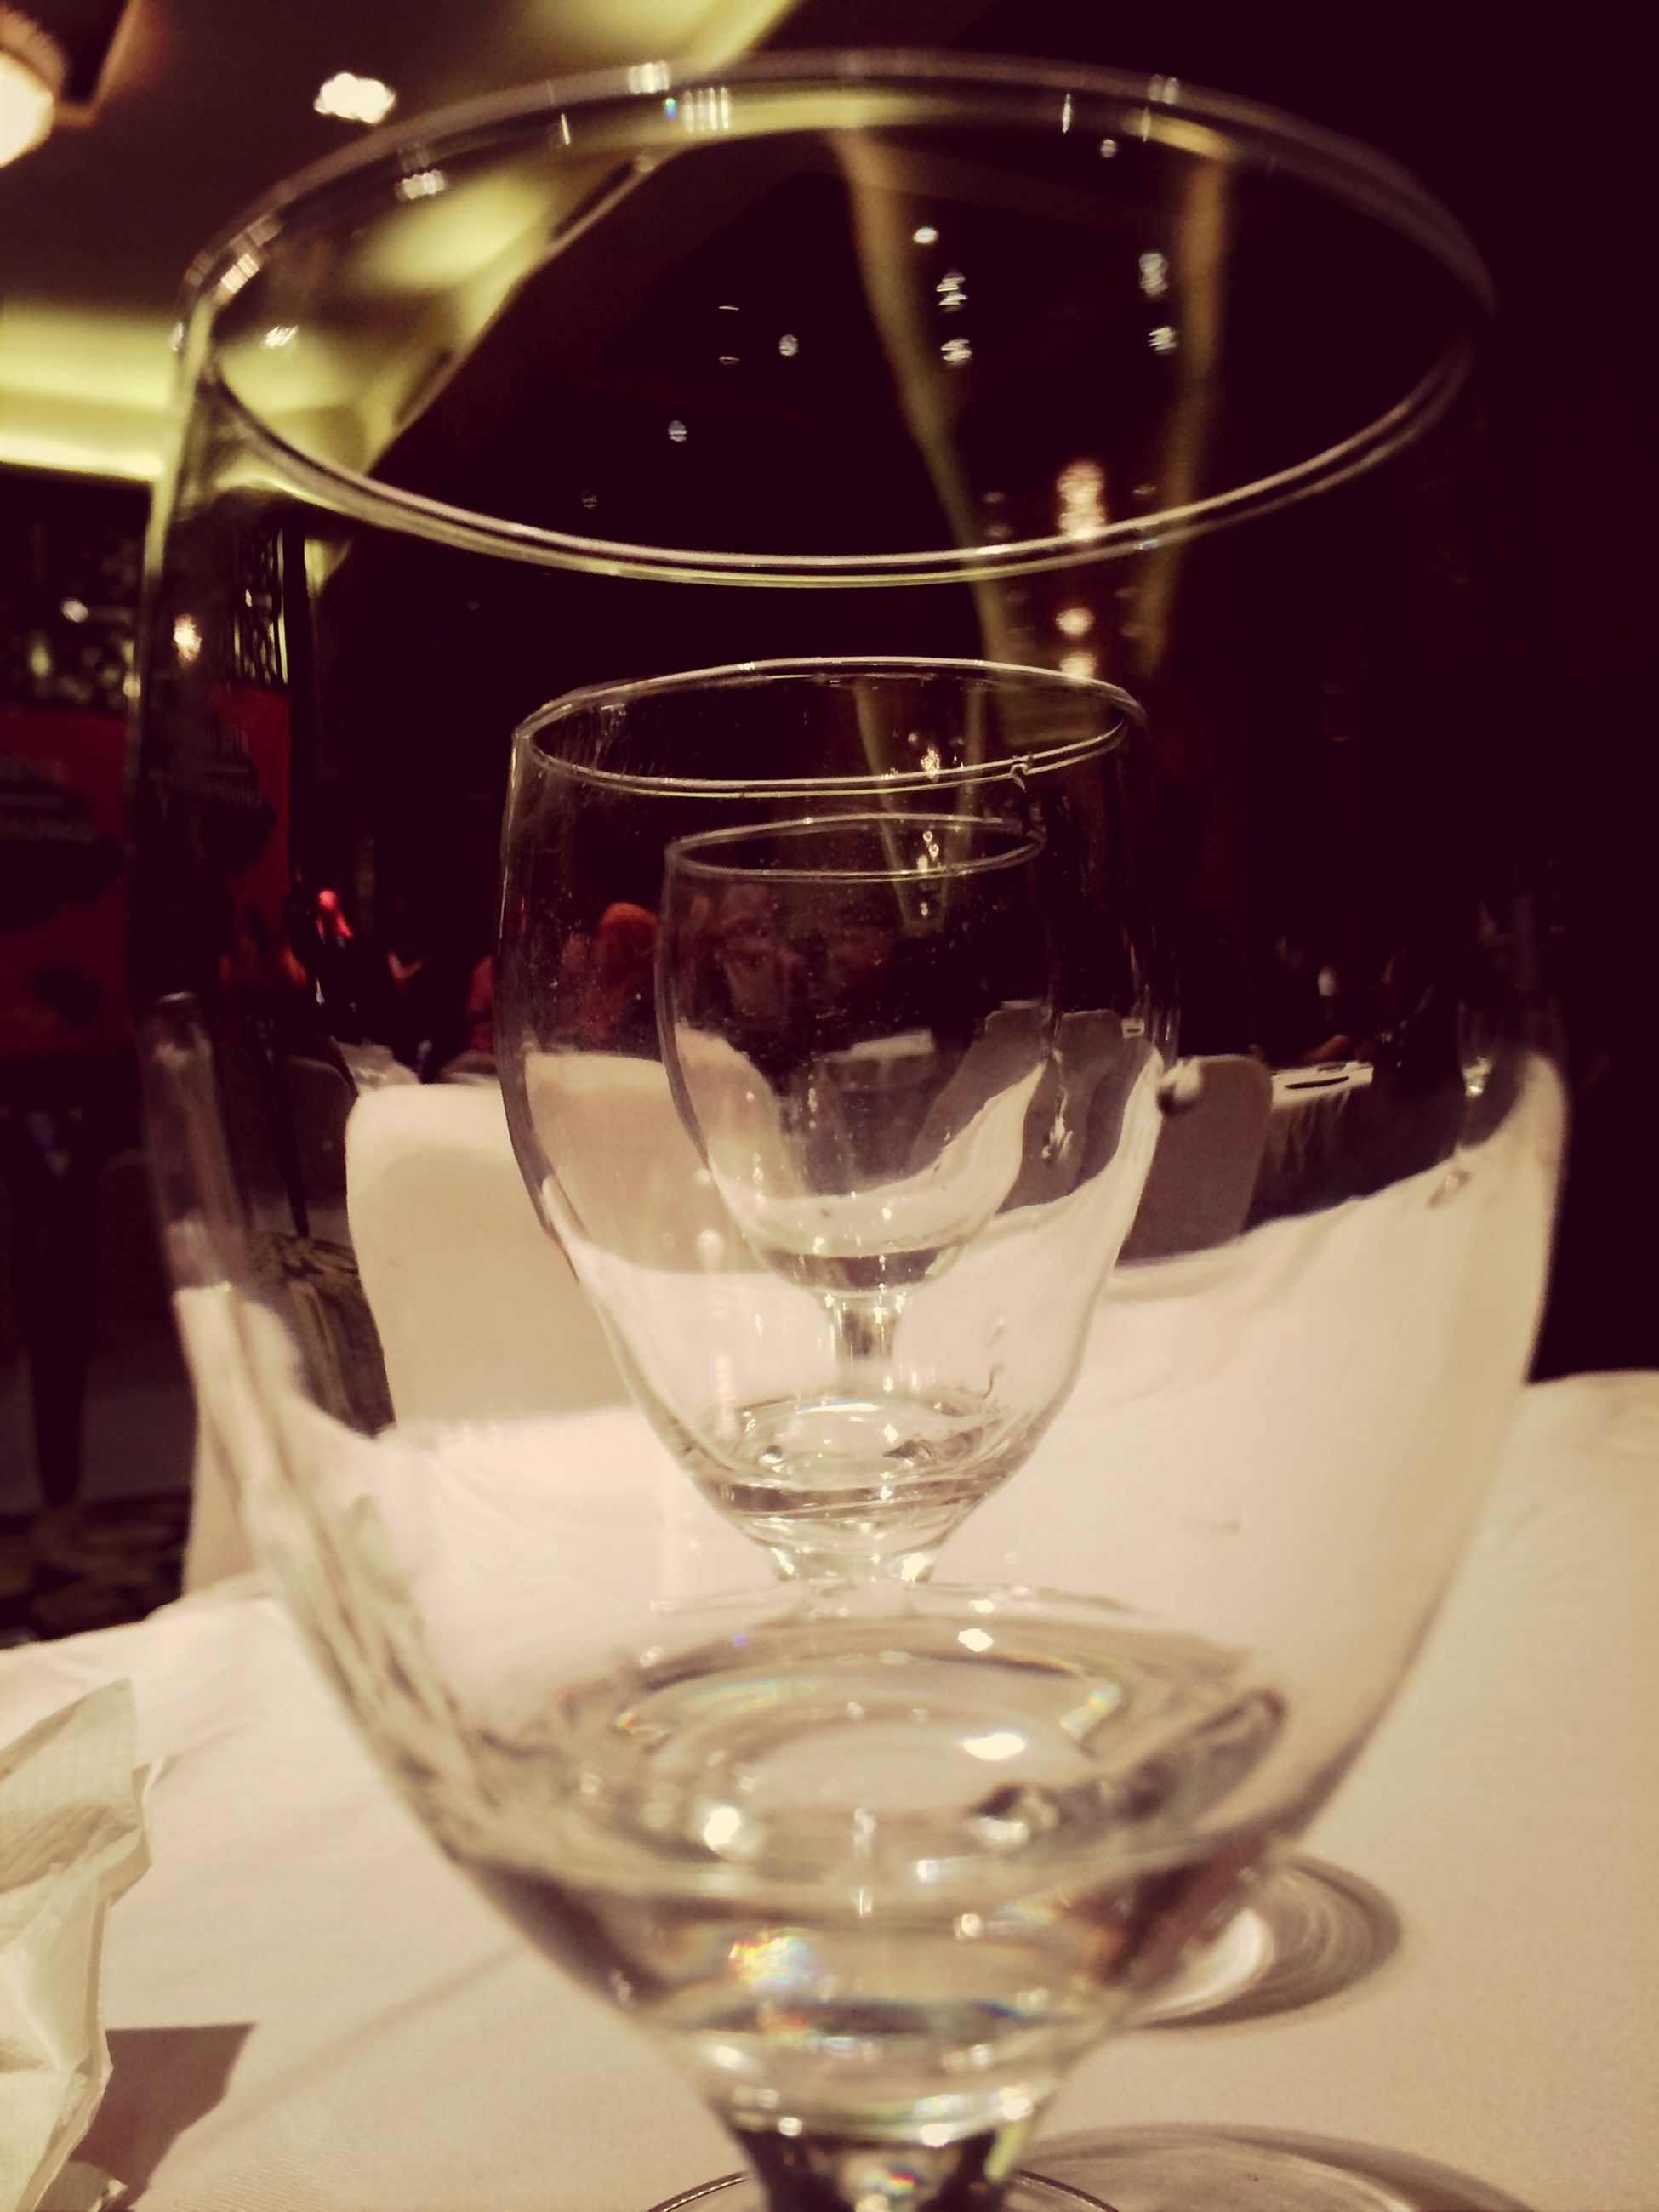 drink, drinking glass, refreshment, food and drink, indoors, table, glass - material, wineglass, alcohol, freshness, transparent, close-up, wine, still life, glass, focus on foreground, restaurant, alcoholic drink, cocktail, red wine